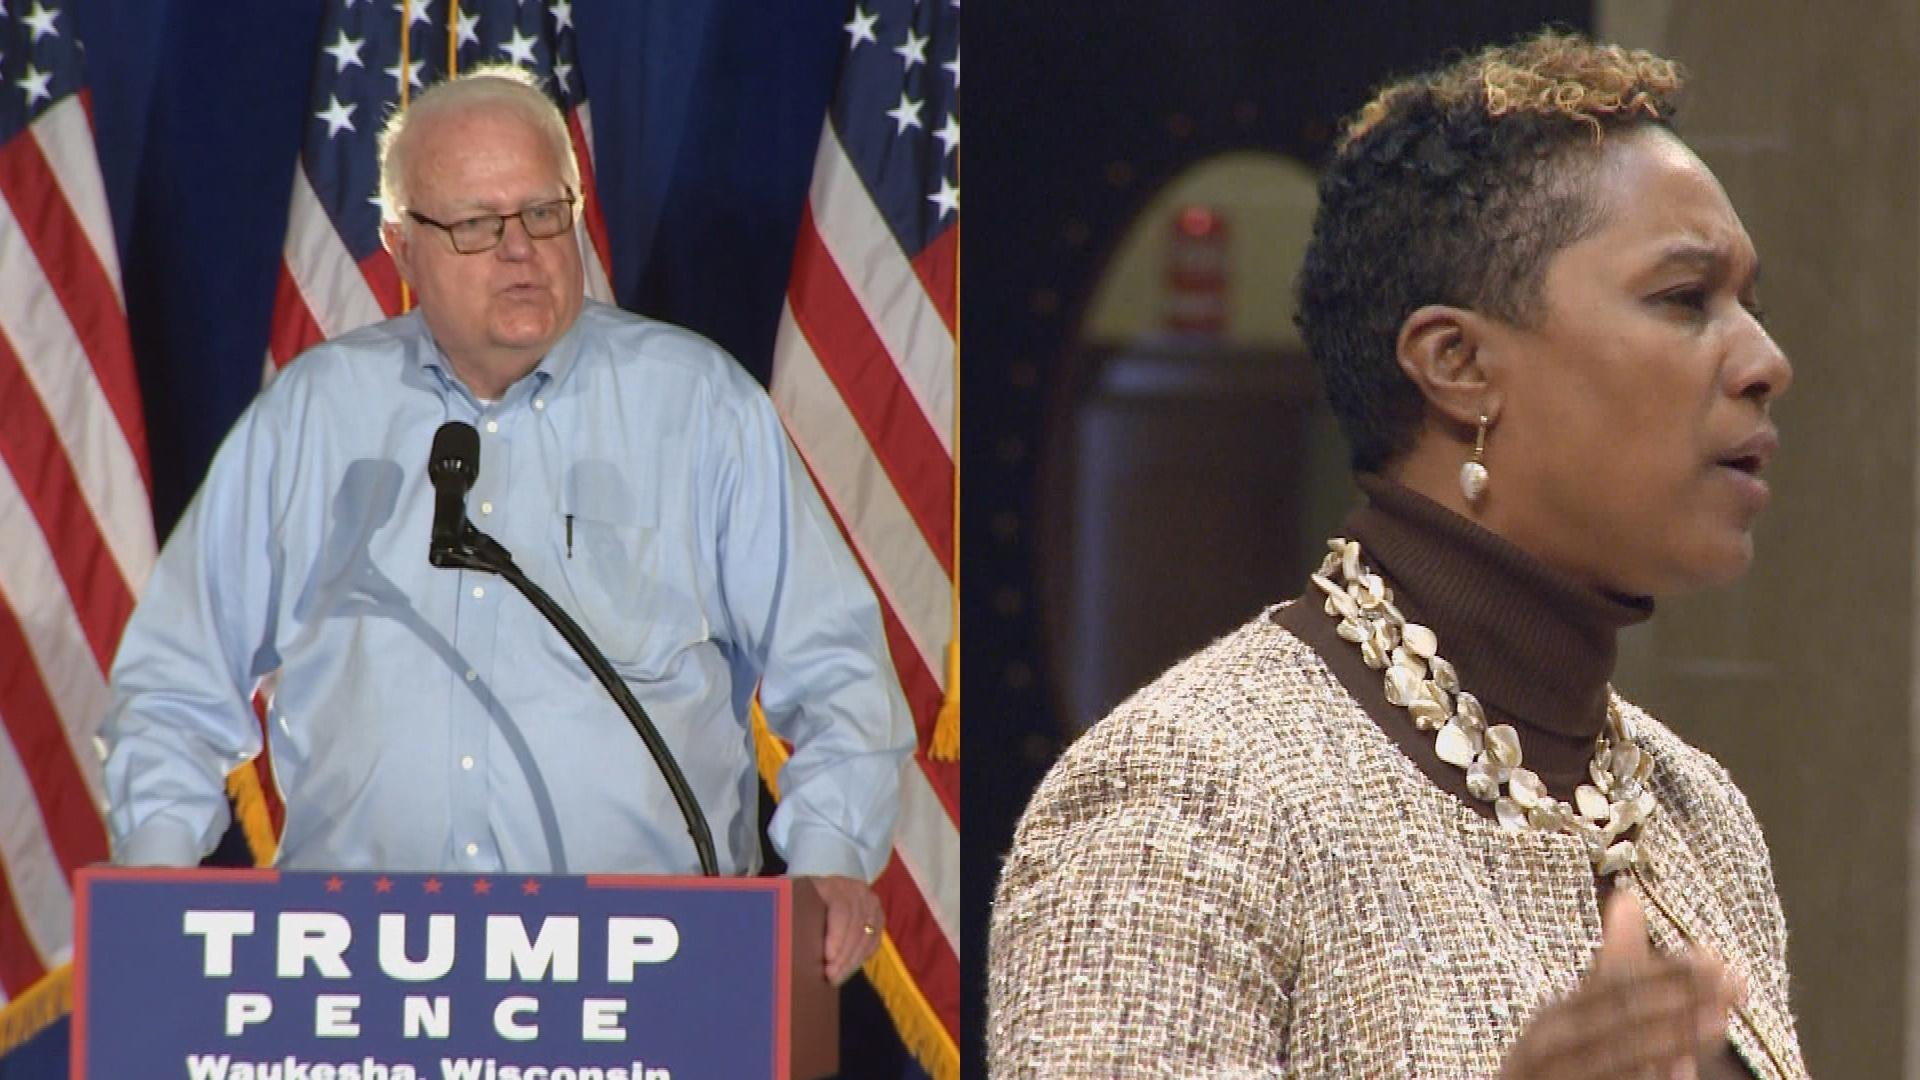 US Rep. Sensenbrenner Retires, Milwaukee Mayor Race Picks Up